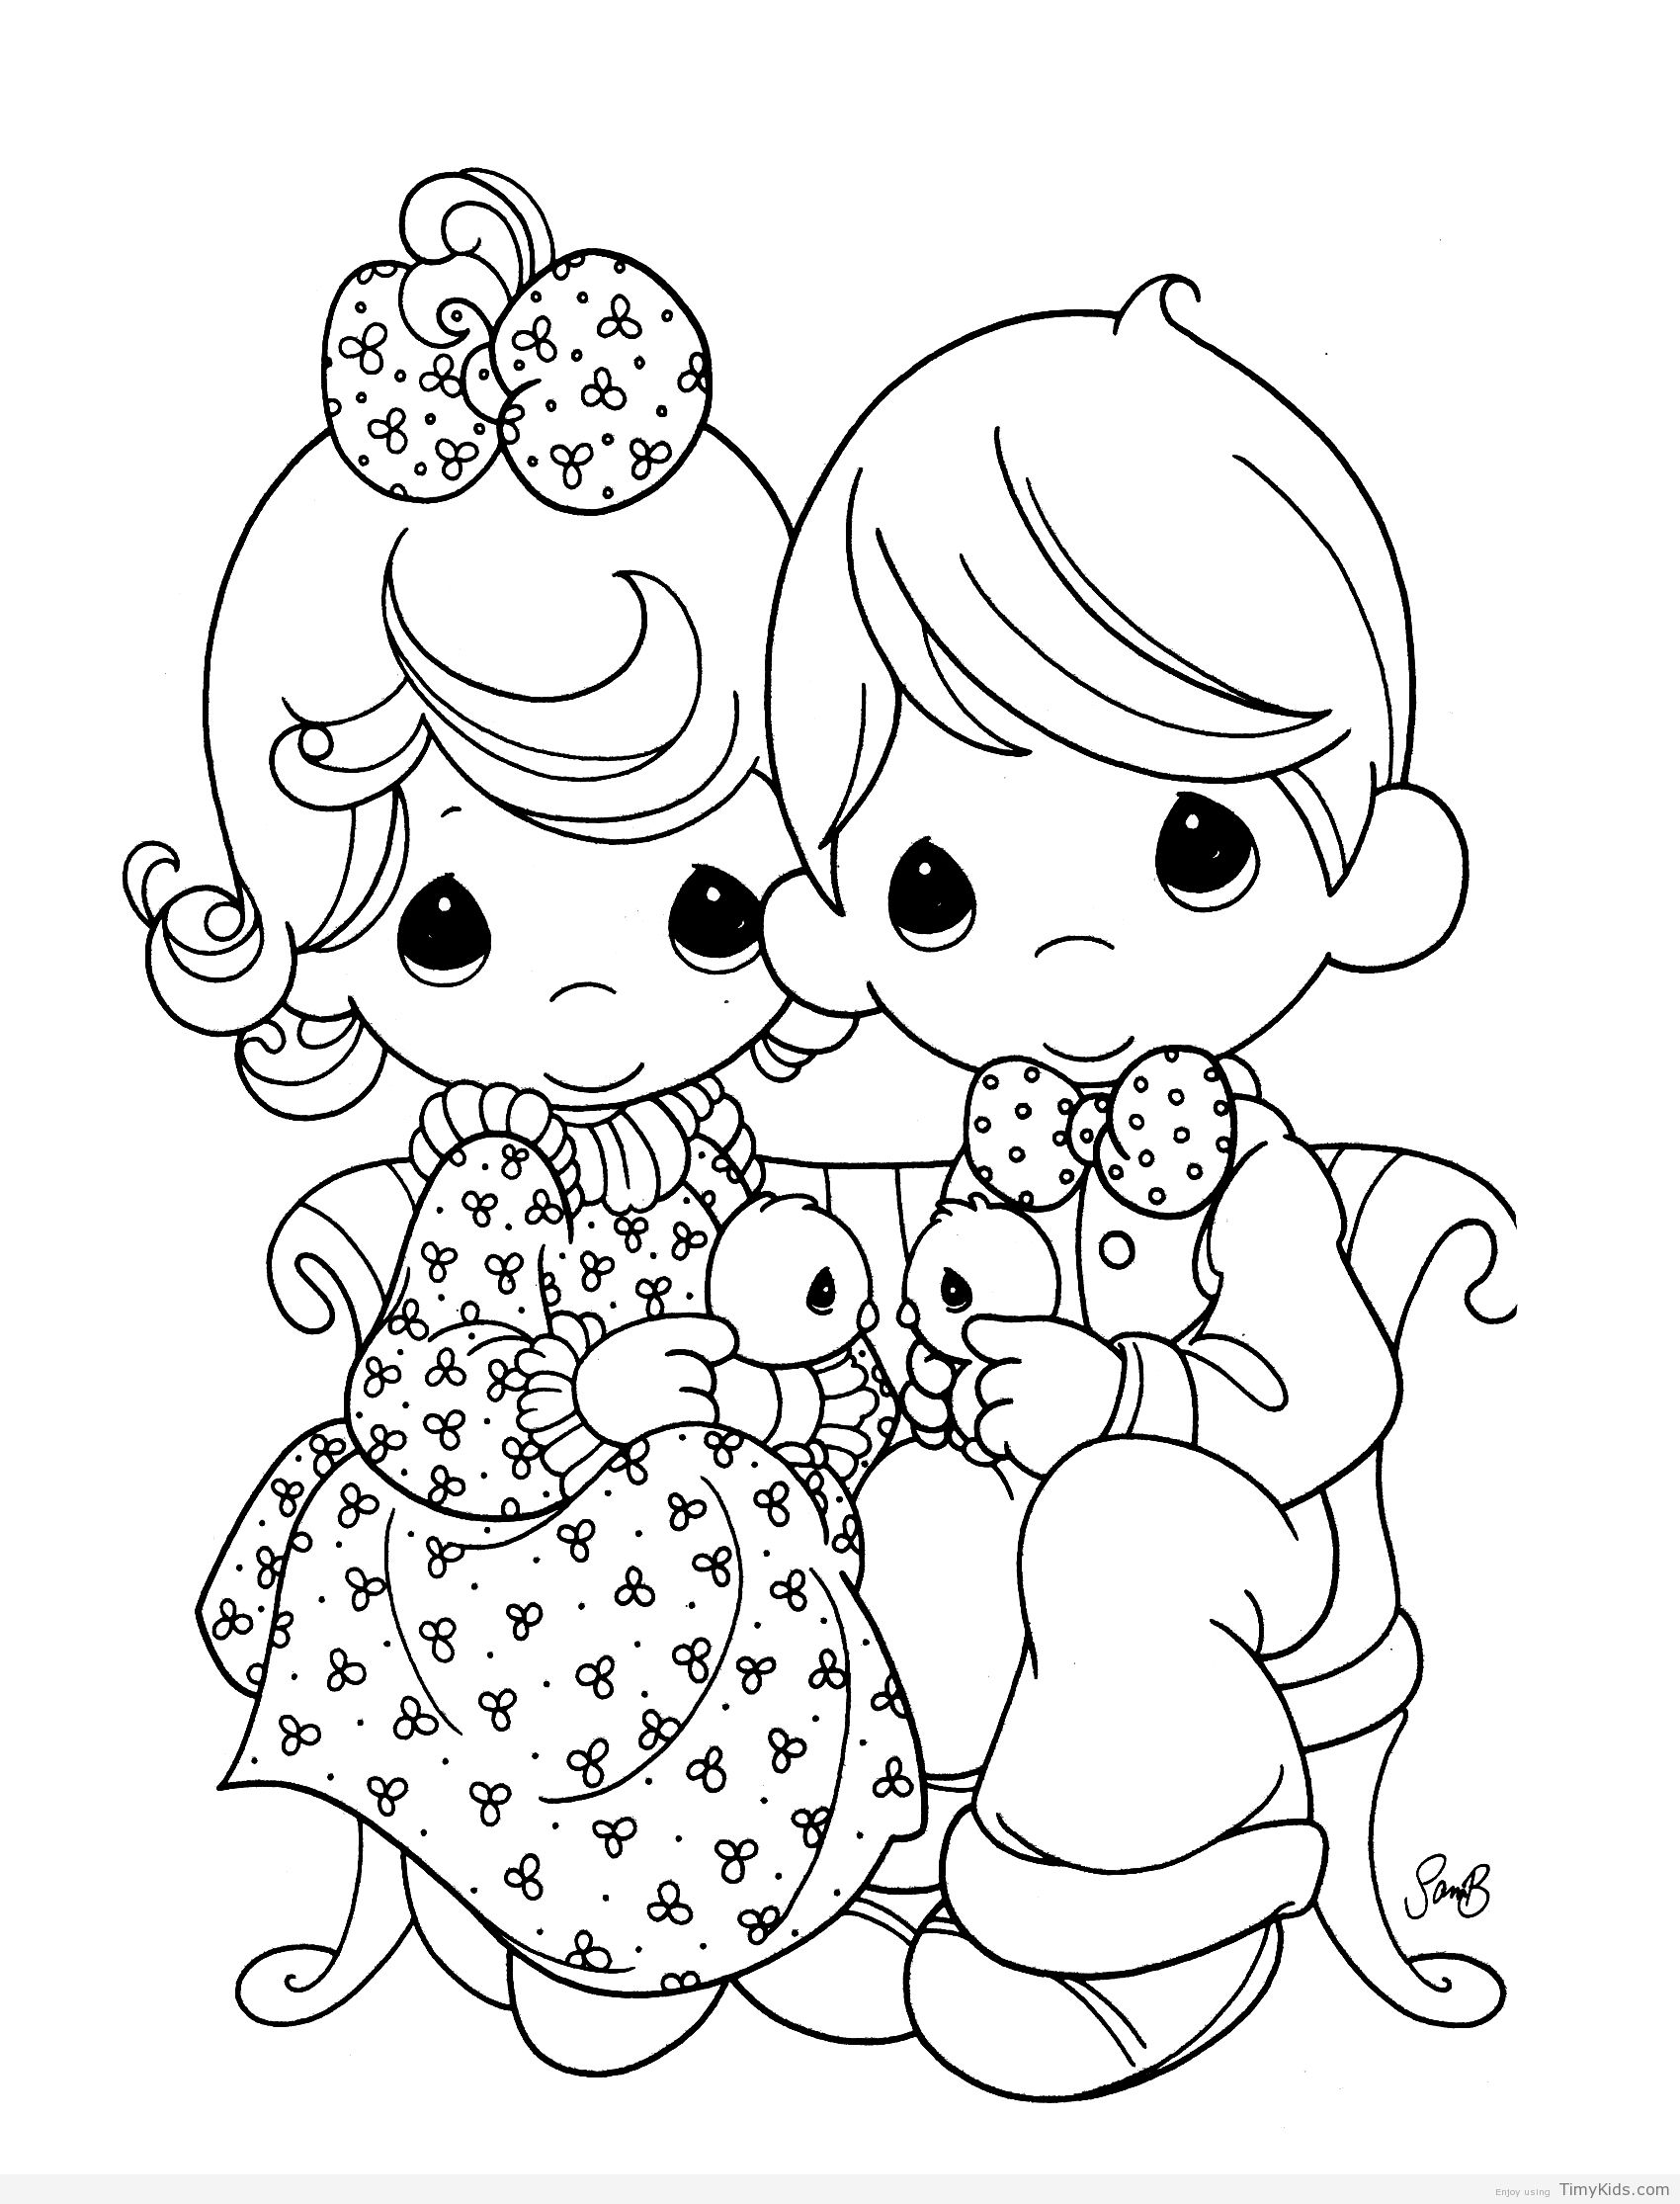 http://timykids.com/coloring-pages-precious-moments.html | Dessin #4 ...